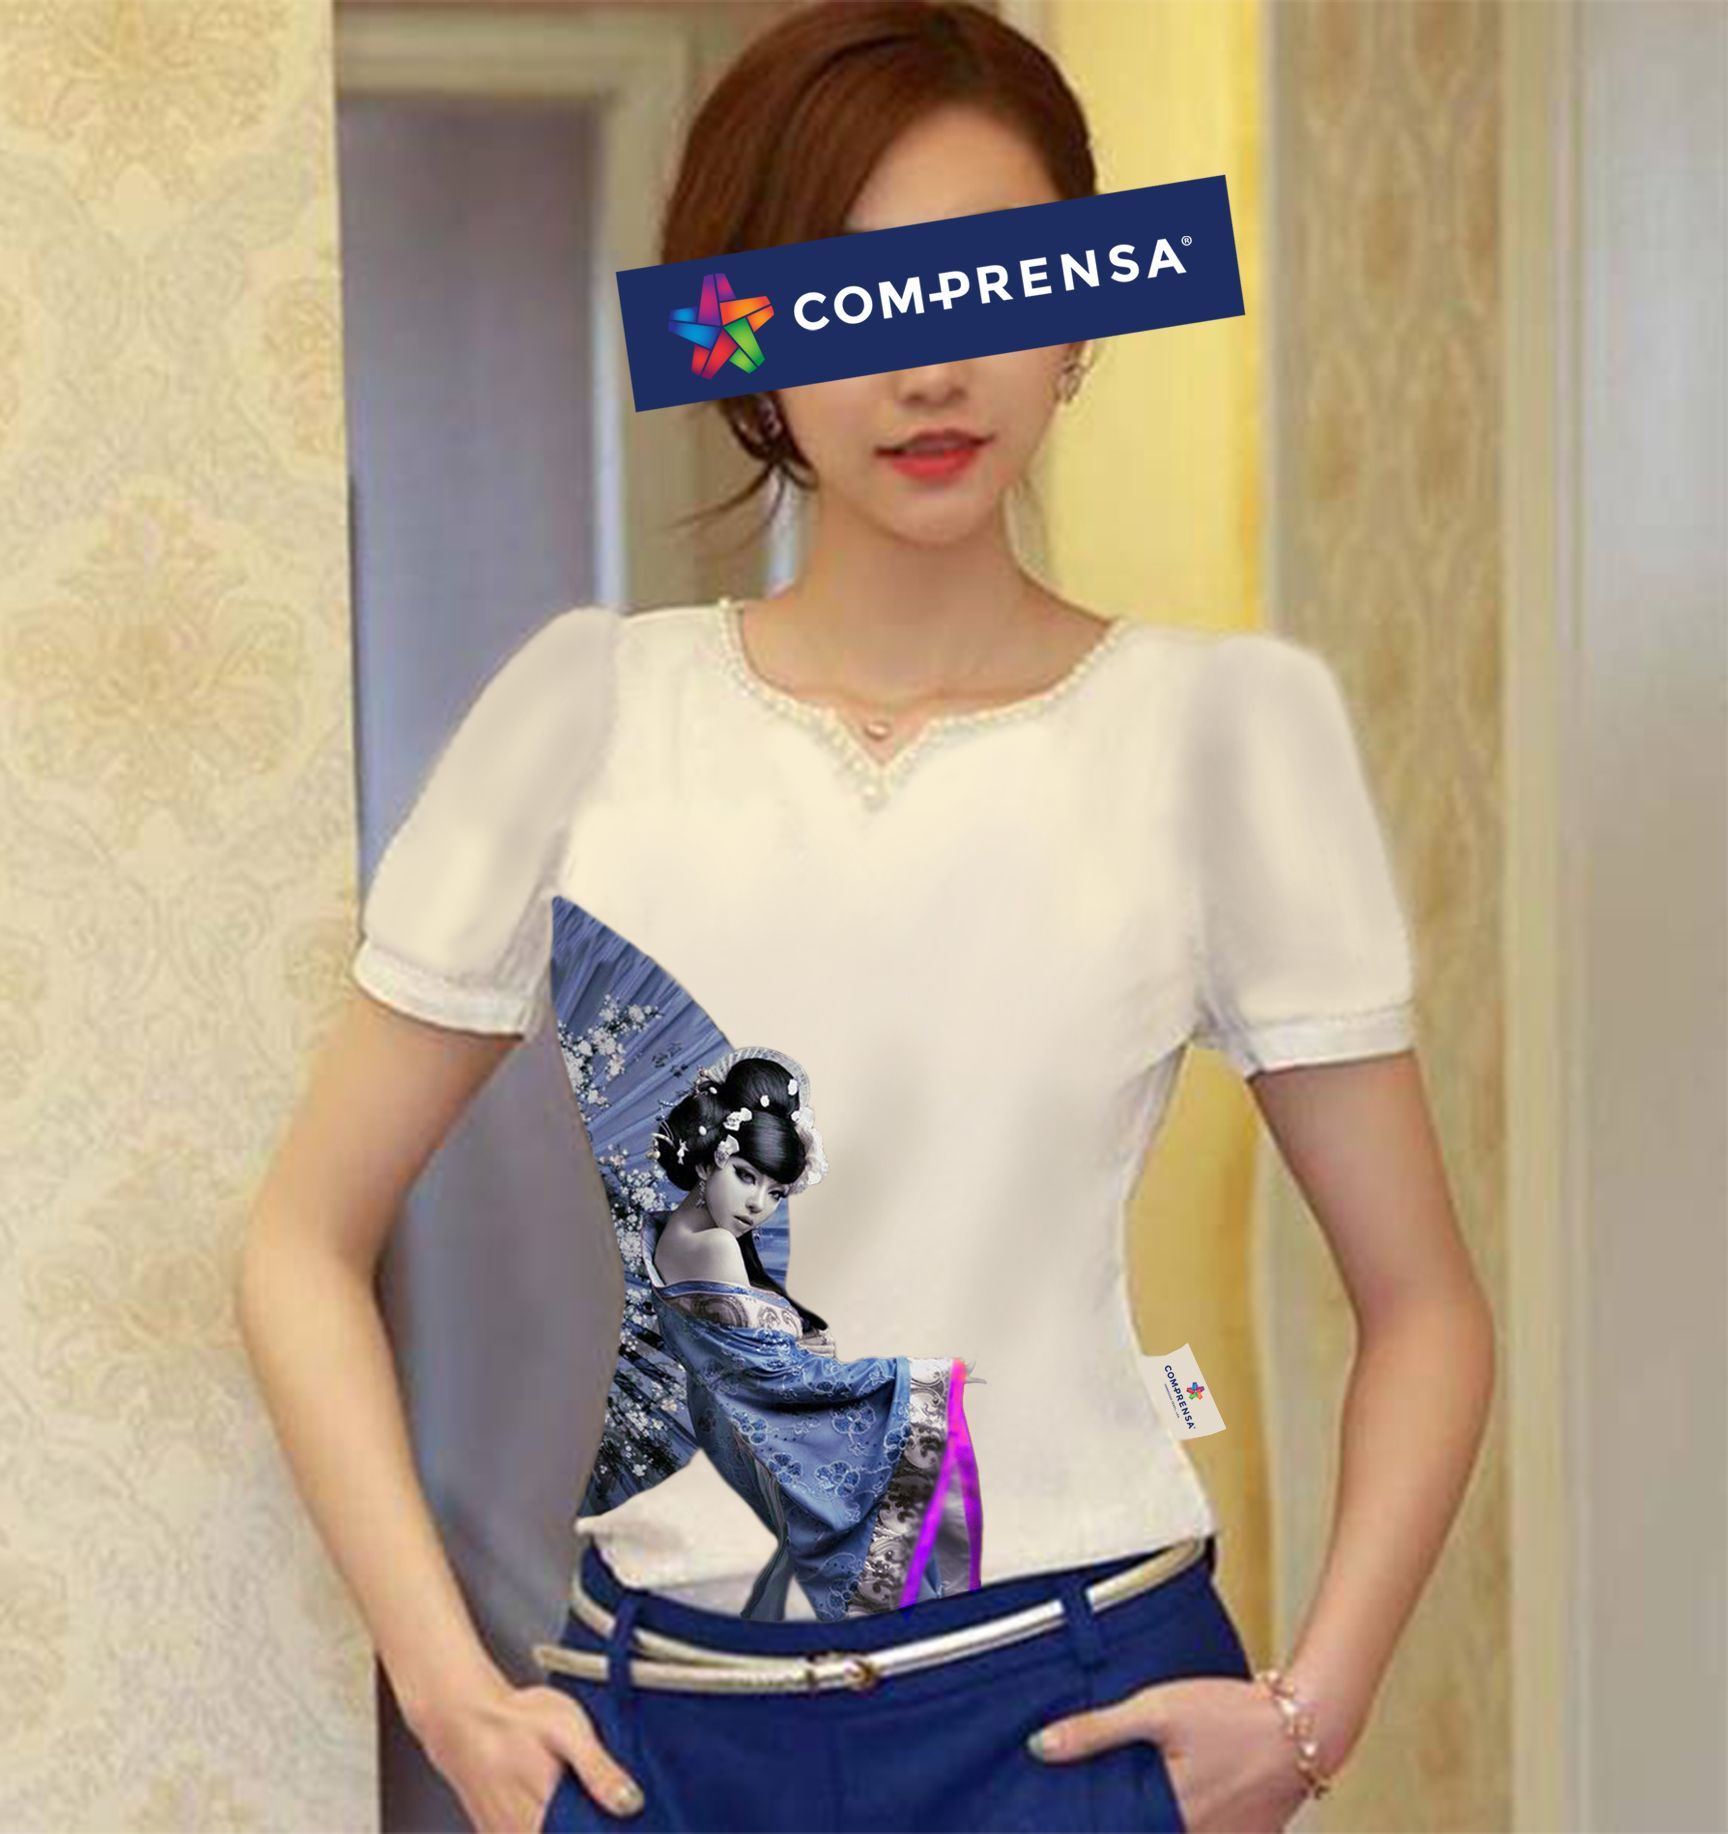 """A t-shirt, short sleeves with a print """"Geisha"""", inspired in the Orient.  #comprensa #model #fashion #manufacturer #design #company #textile #portugal #jersey #fleece #cotton #bio #sublimation #screenprinting #digitalprint #laser #photoprint"""